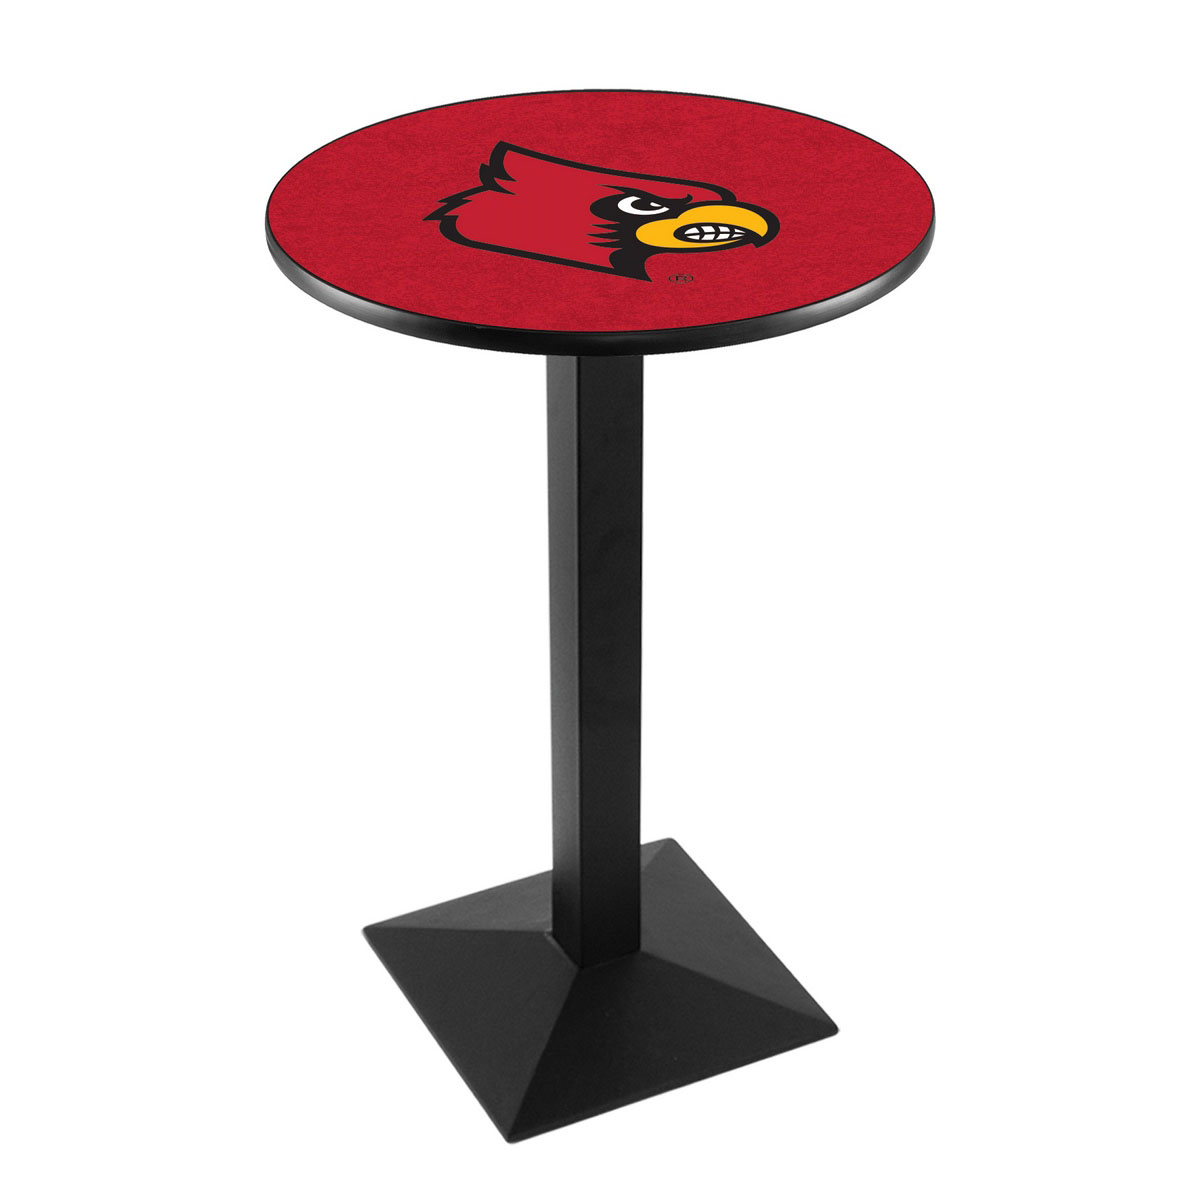 Purchase University Louisville Logo Pub Bar Table Square Stand Product Photo